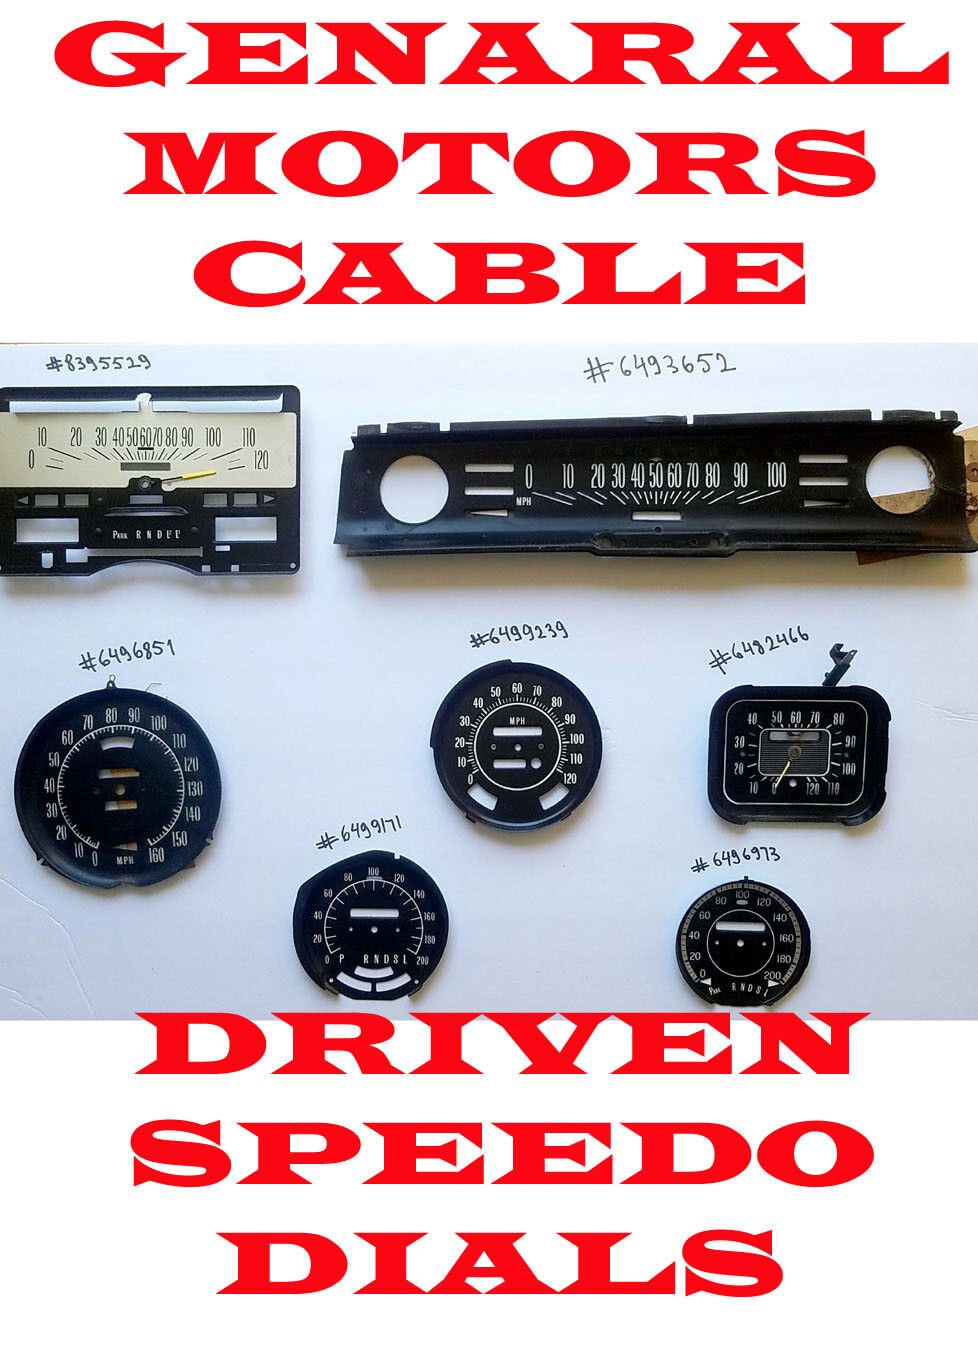 1993 TO 2004 FORD CROWN VICTORIA CLUSTER SOFTWARE & ODOMETER CALIBRATION SERVICE